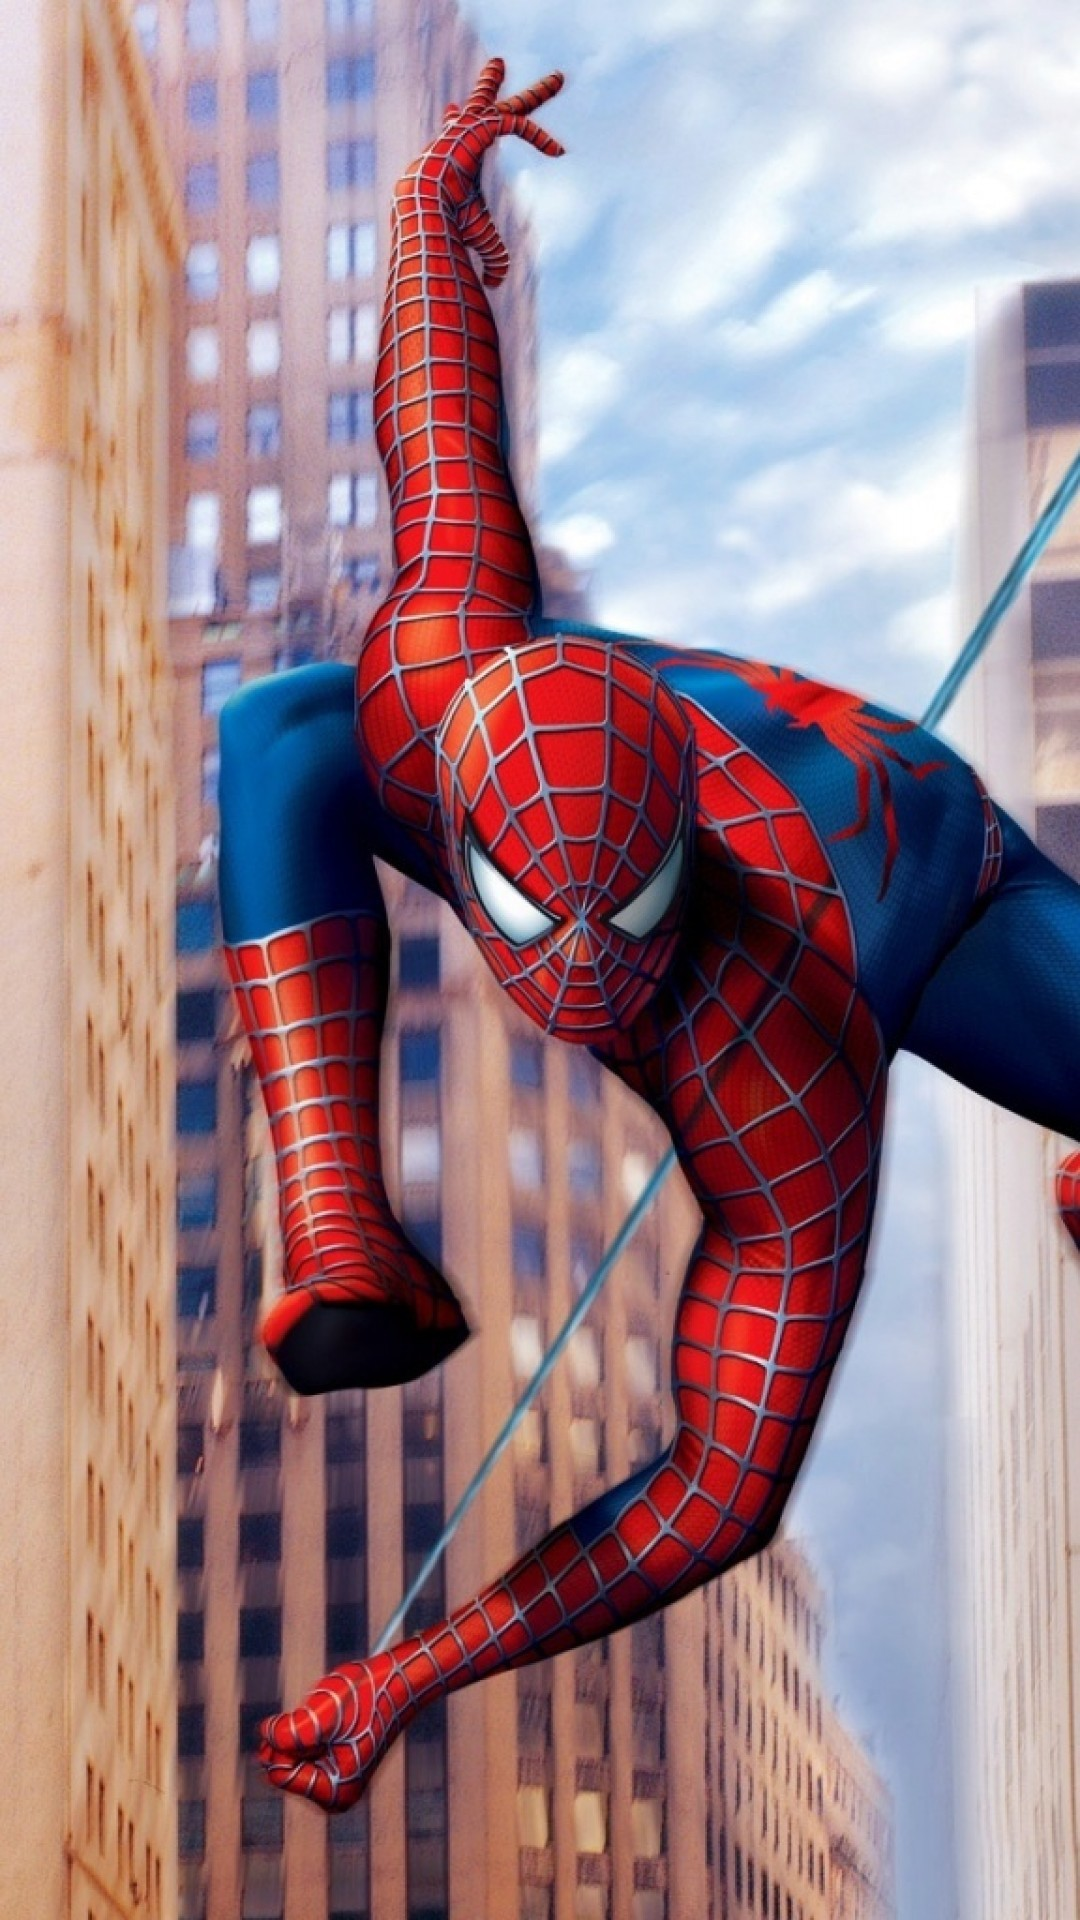 Spiderman iphone wallpaper hd 83 images - Images spiderman ...